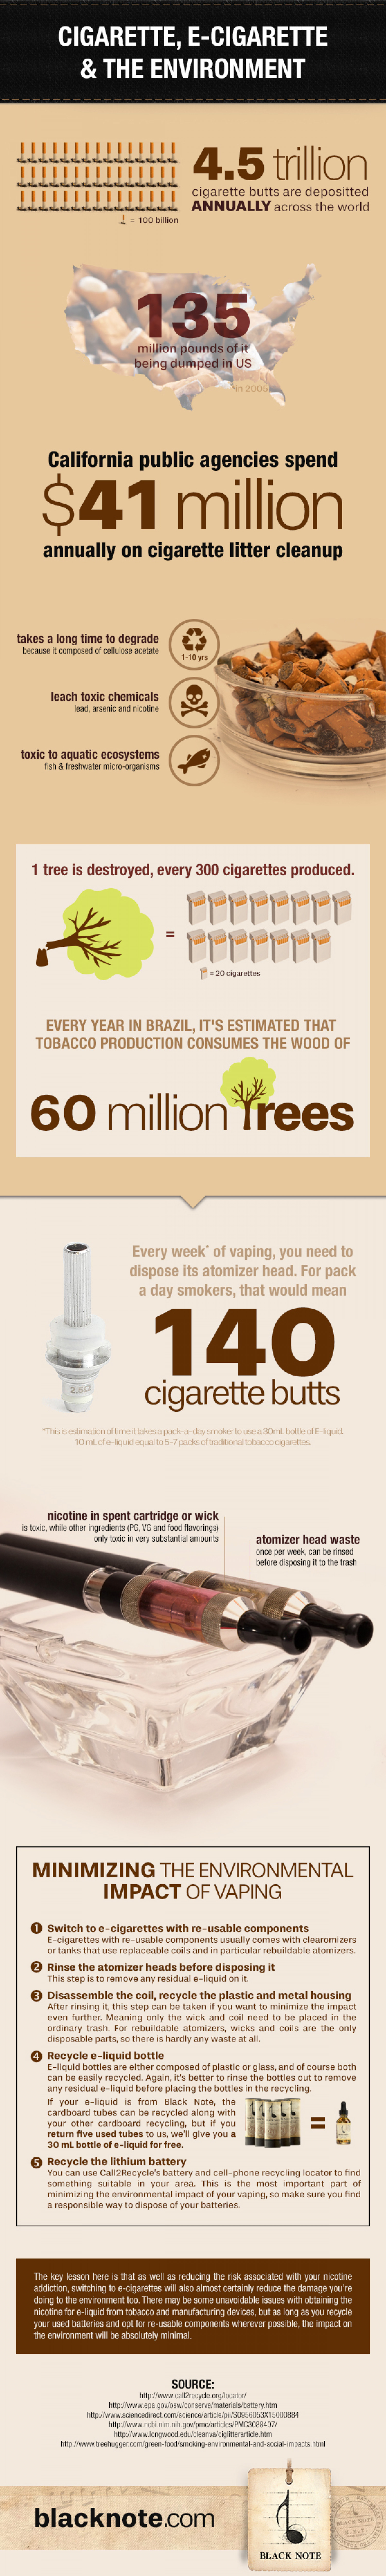 Cigarettes, E-Cigarettes, and The Environment Infographic